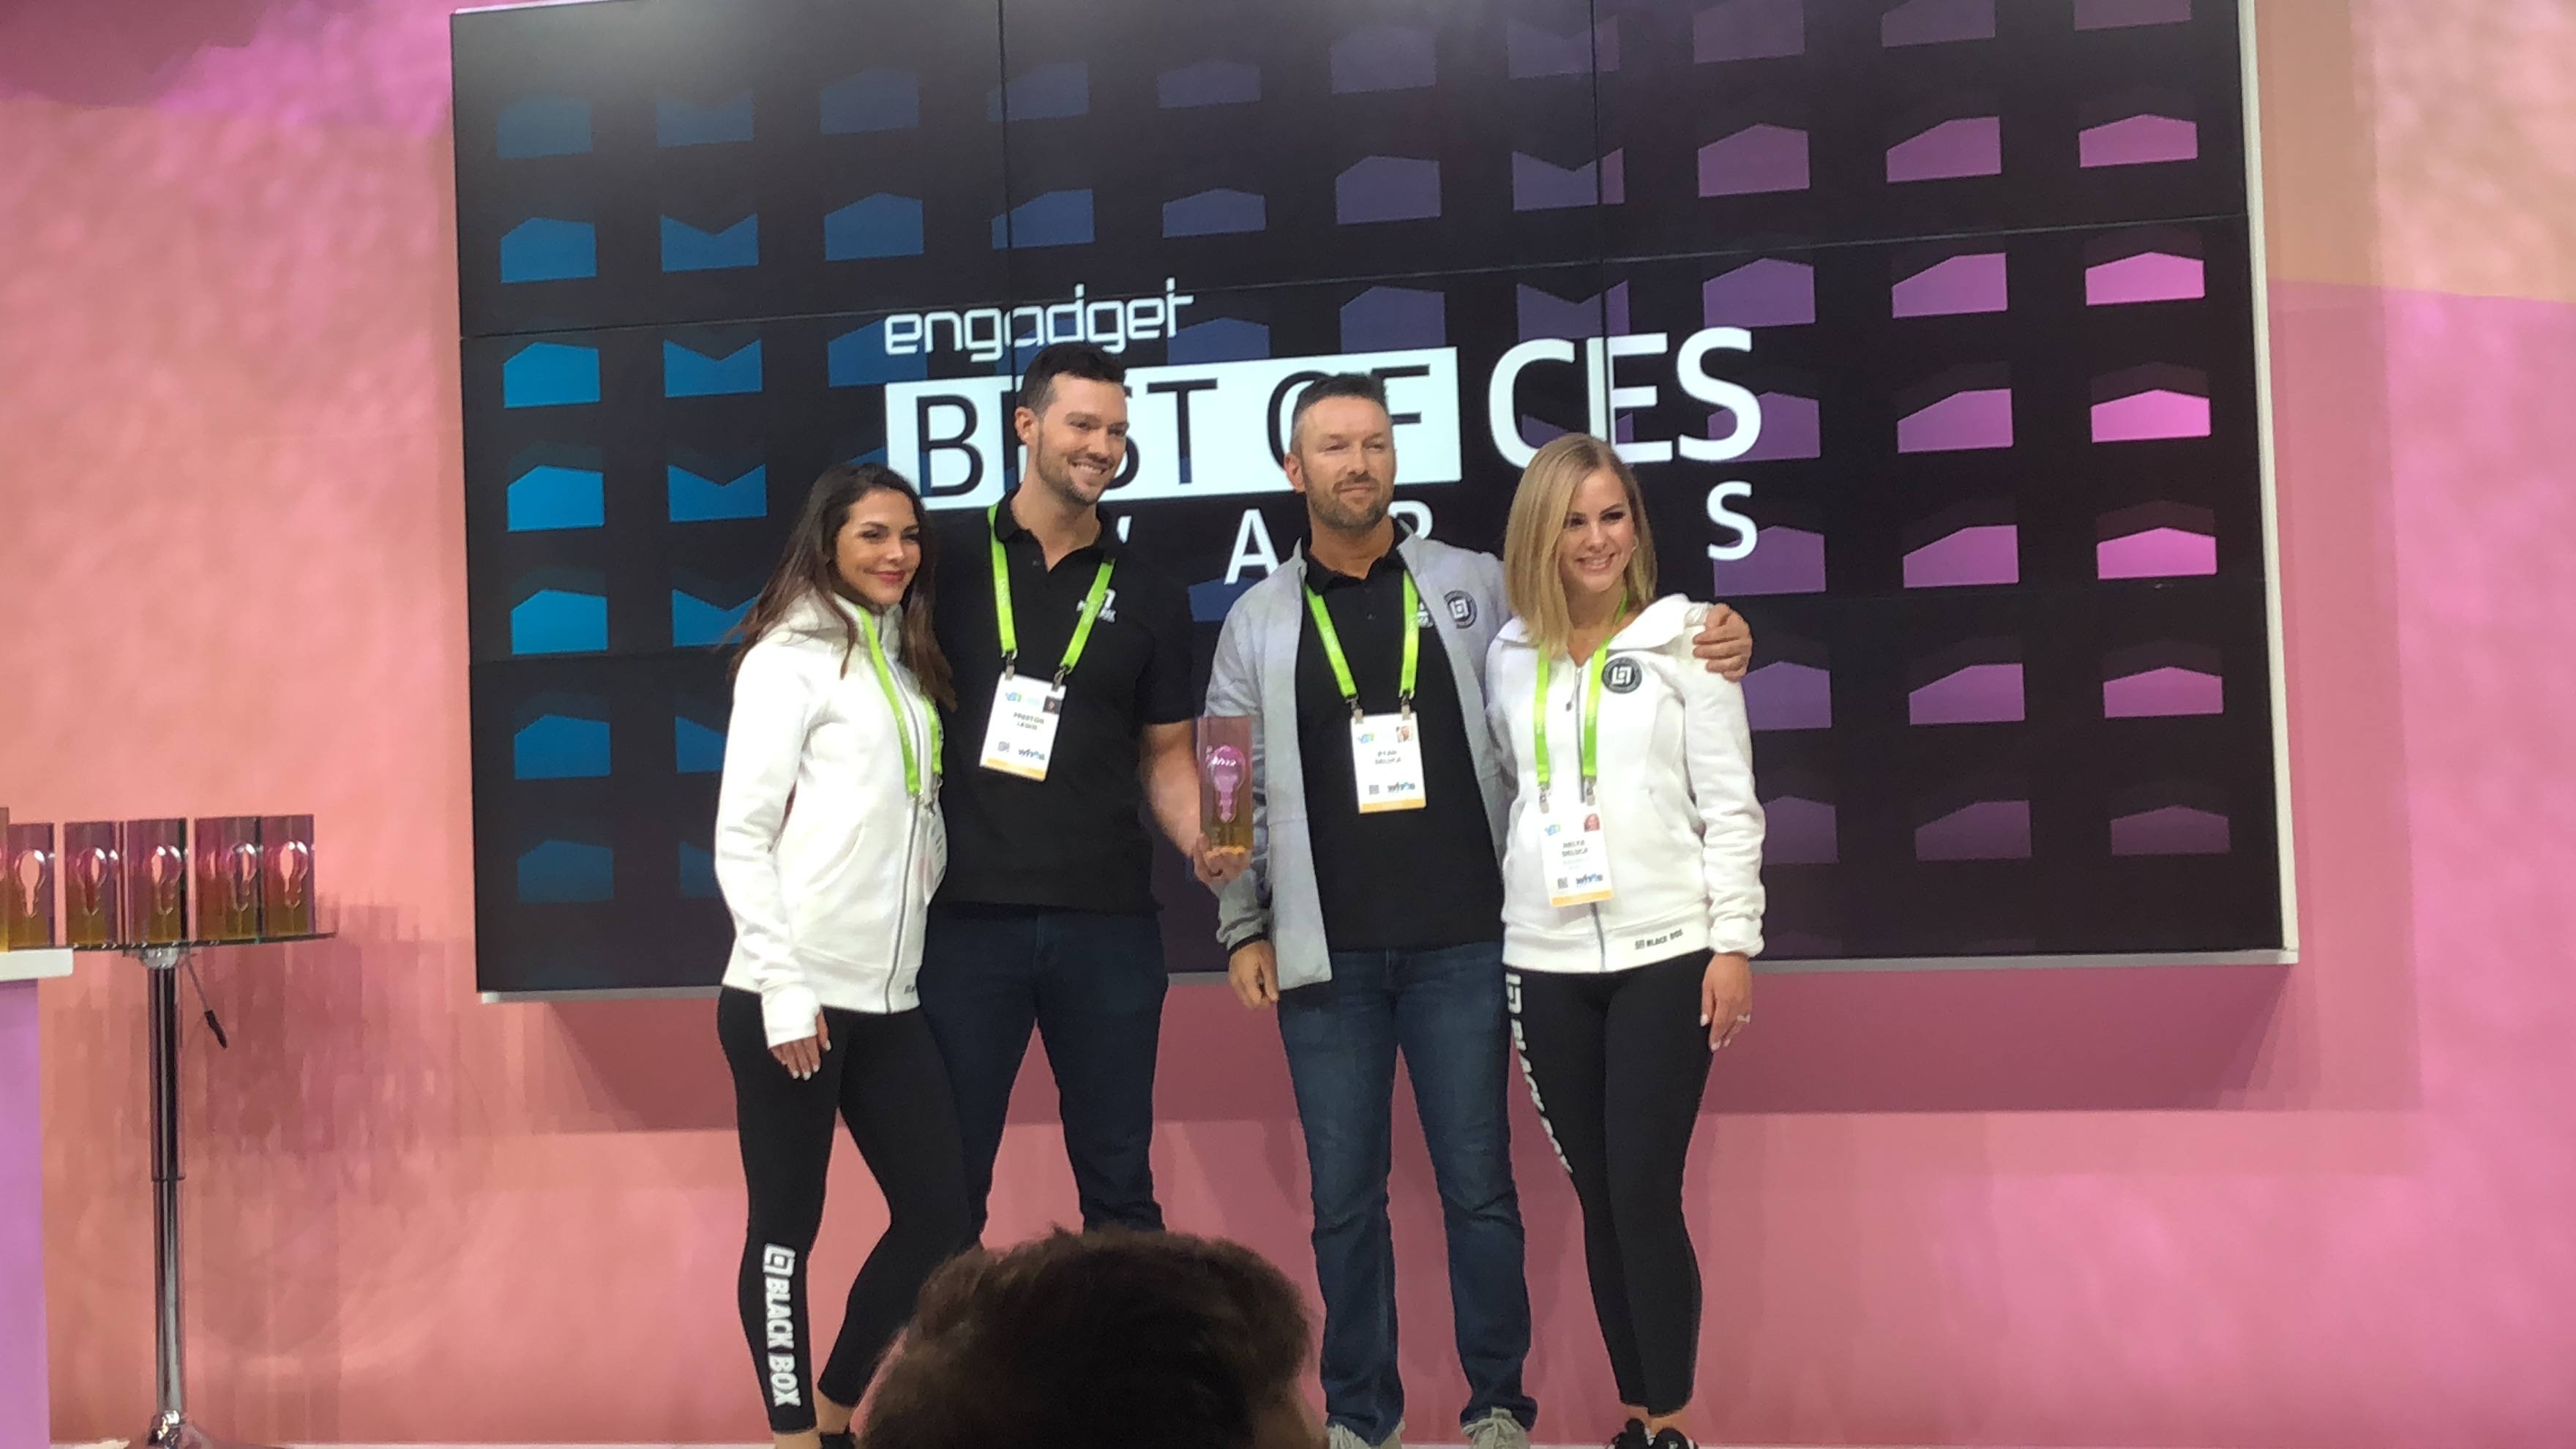 Preston Lewis & Ryan DeLuca receiving award for Best Startup at CES